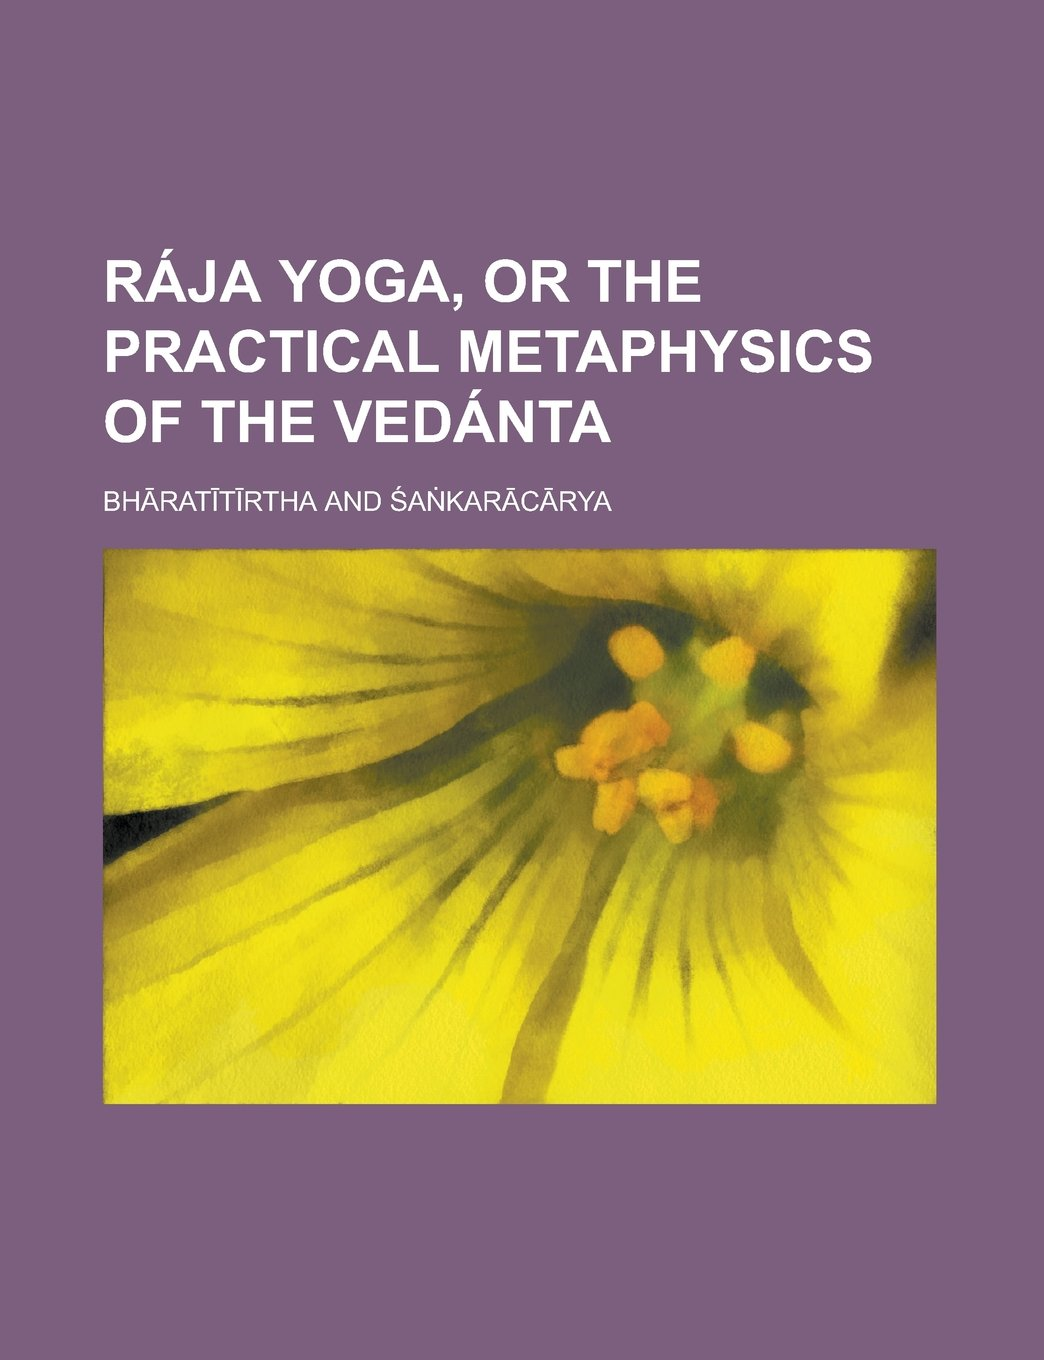 Raja Yoga, or the Practical Metaphysics of the Vedanta ...